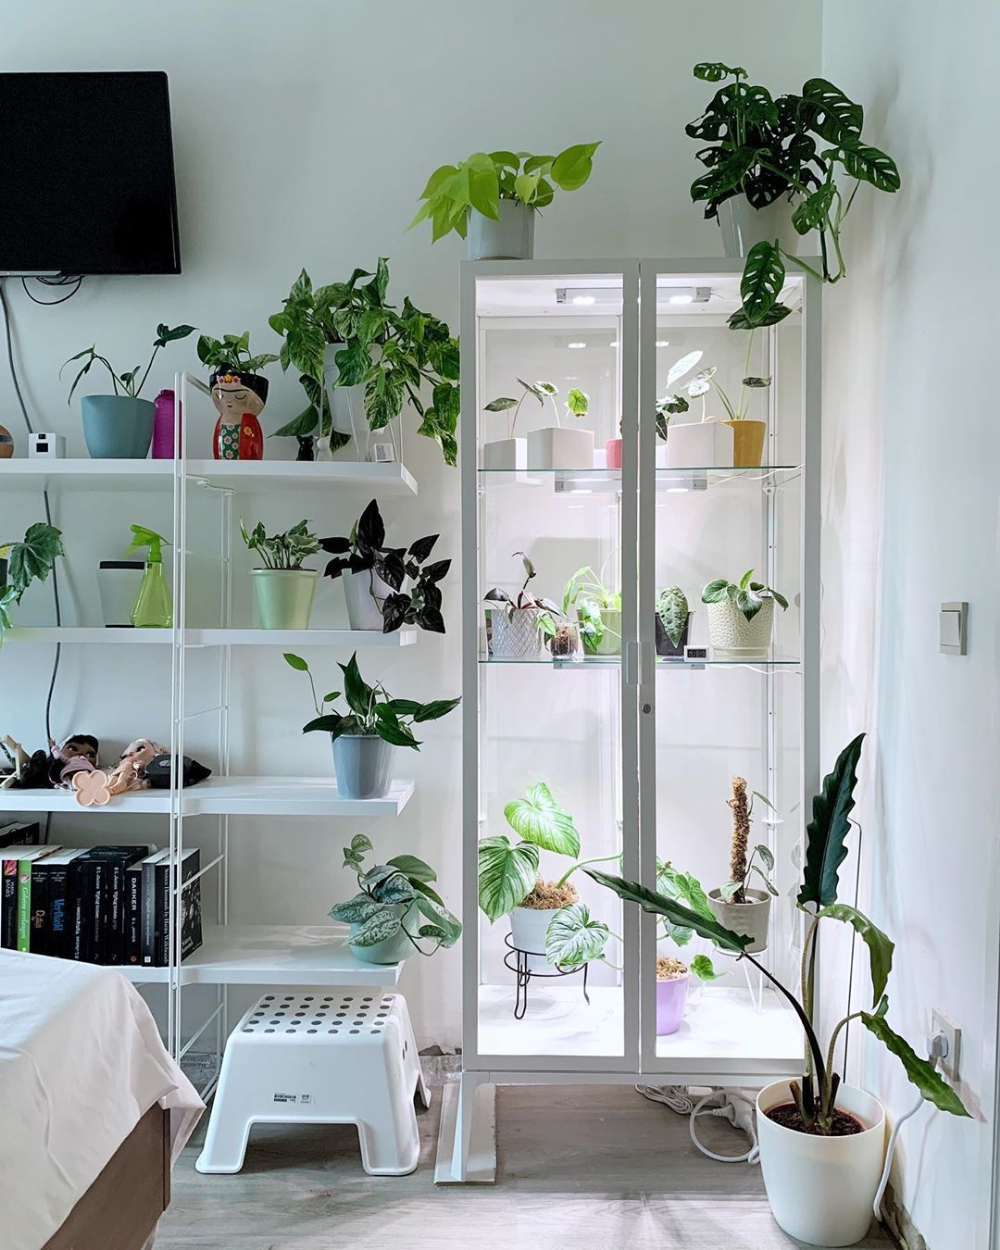 New View In My Bedroom Got A Greenhouse Installed For Those Gorgeous Humidity Loving Babies Info Ikea Mils Ikea Plants Indoor Greenhouse Cute Room Ideas